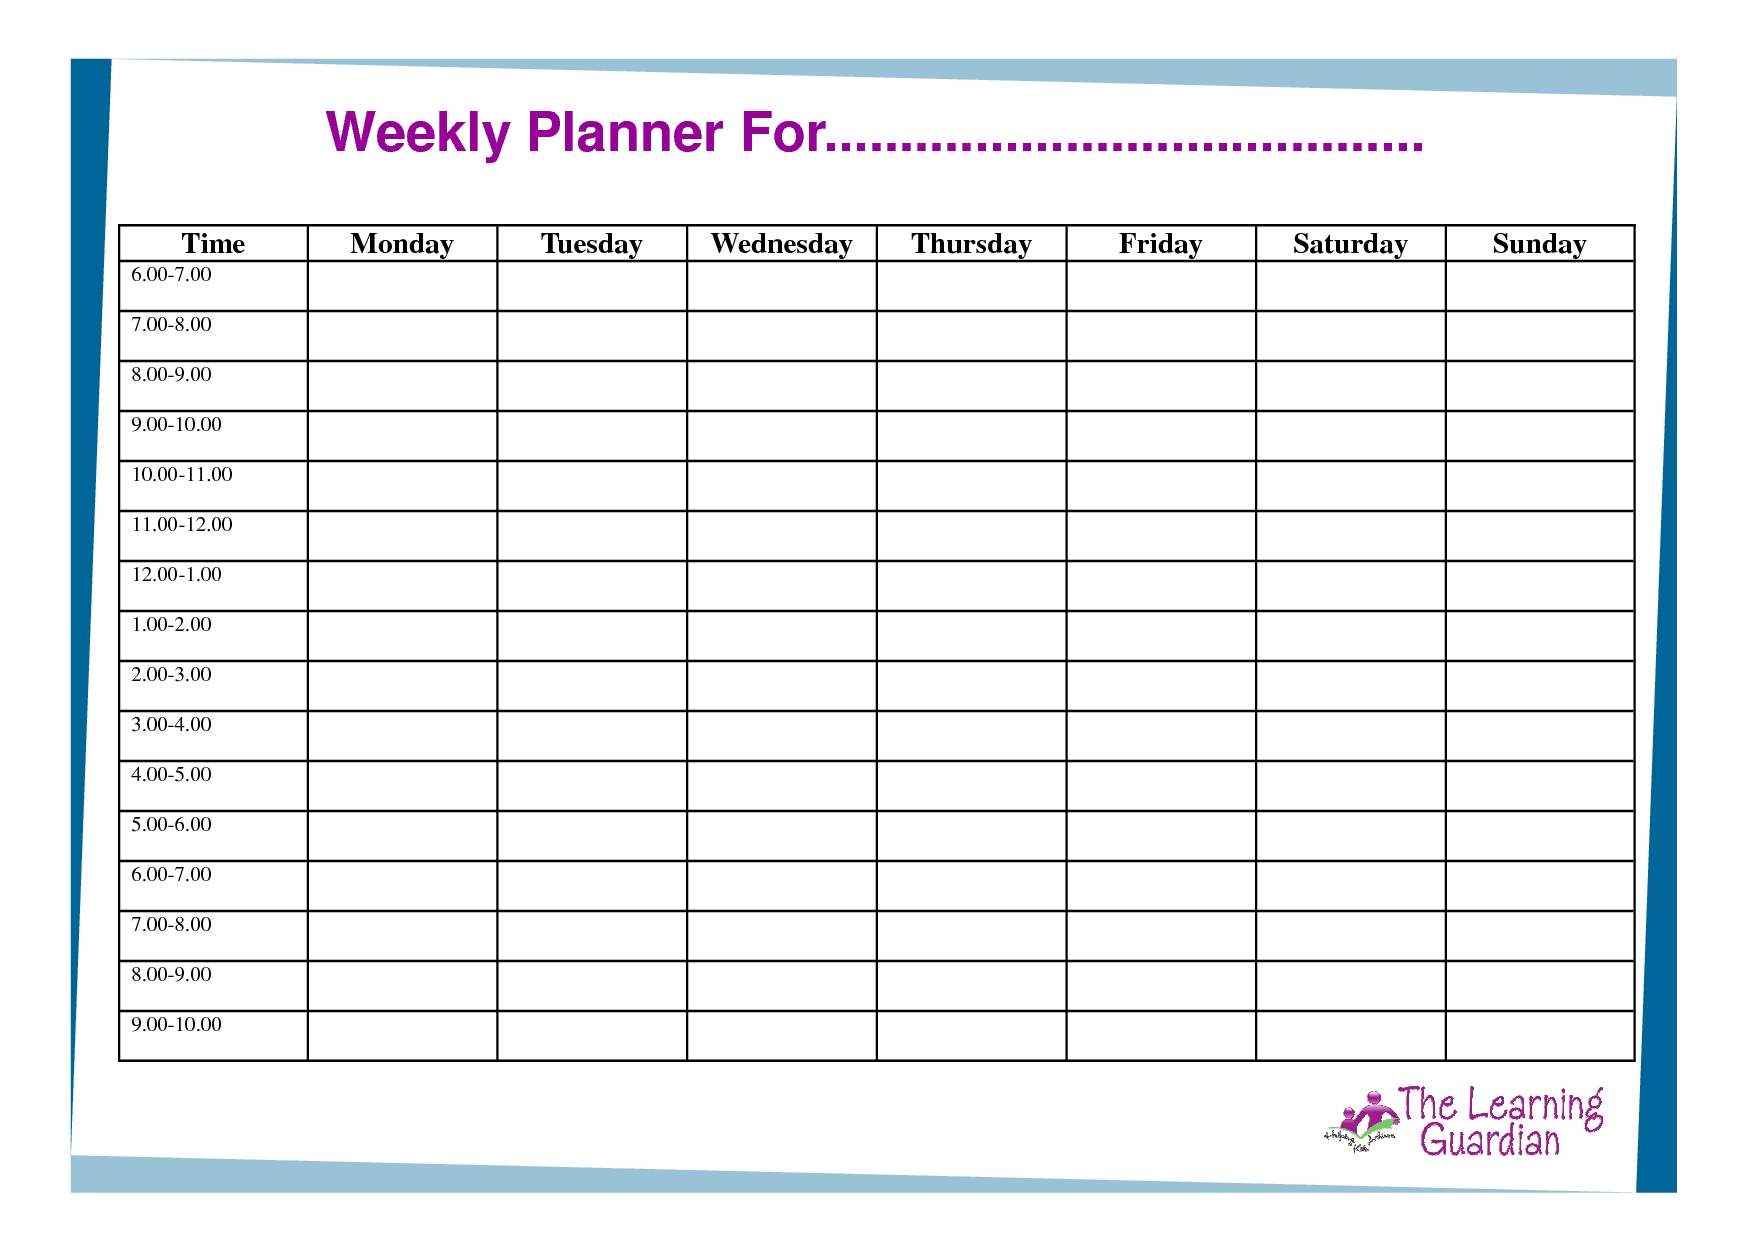 Online Daily Time Slot Planner  Template Calendar Design with Free Weekly Calendar Template With Time Slots